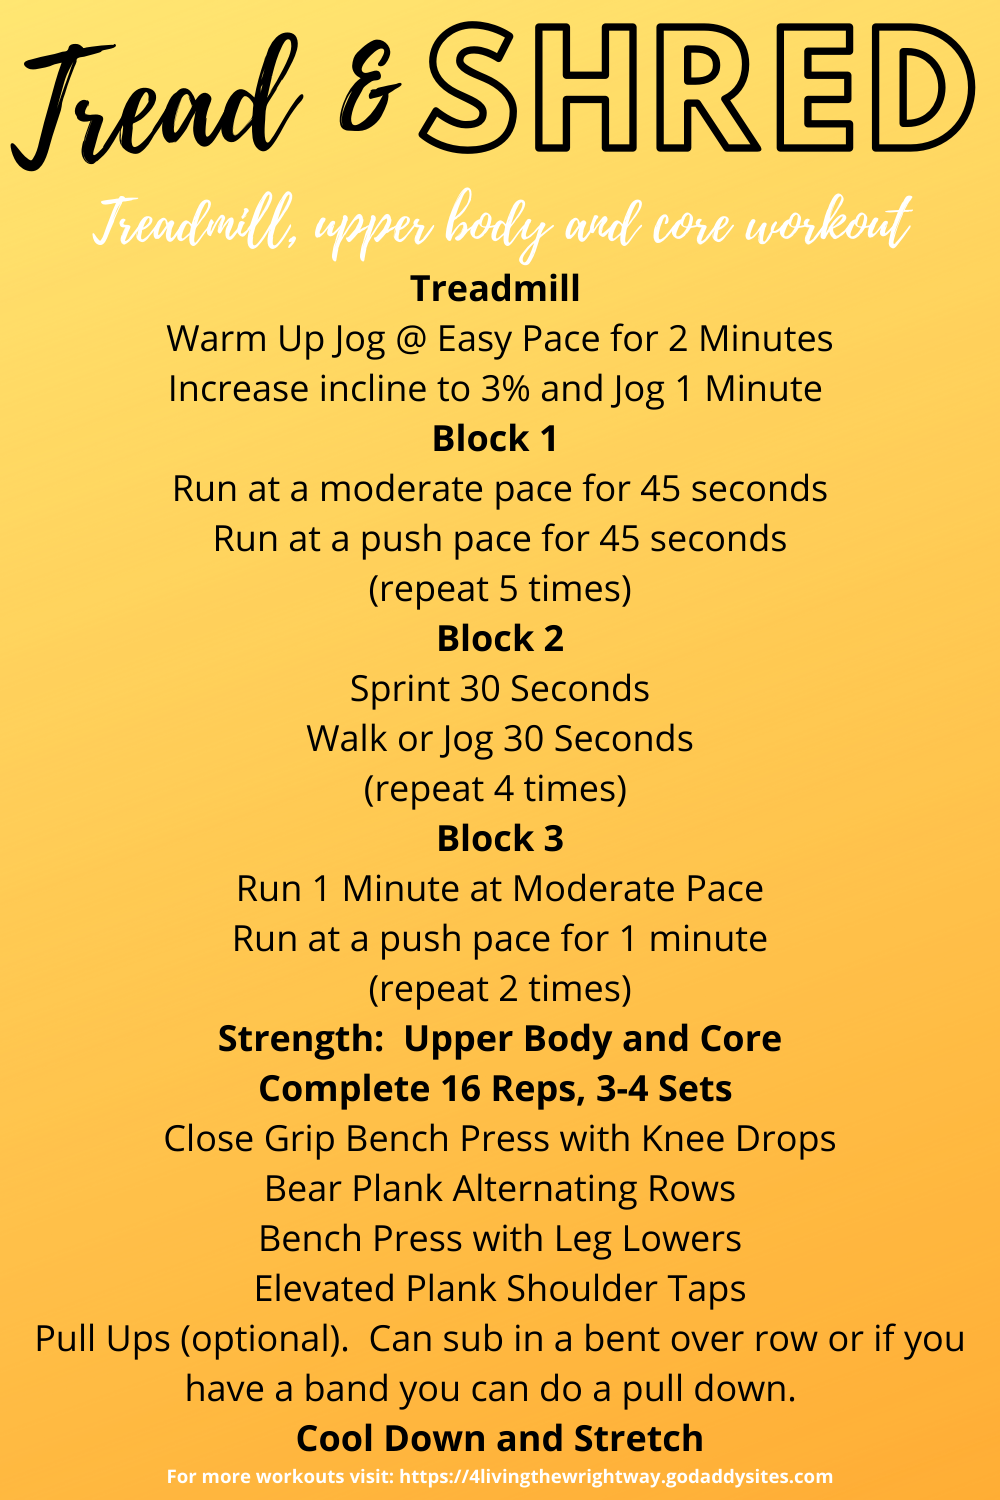 Tread and Shred Orange Theory Style Workout